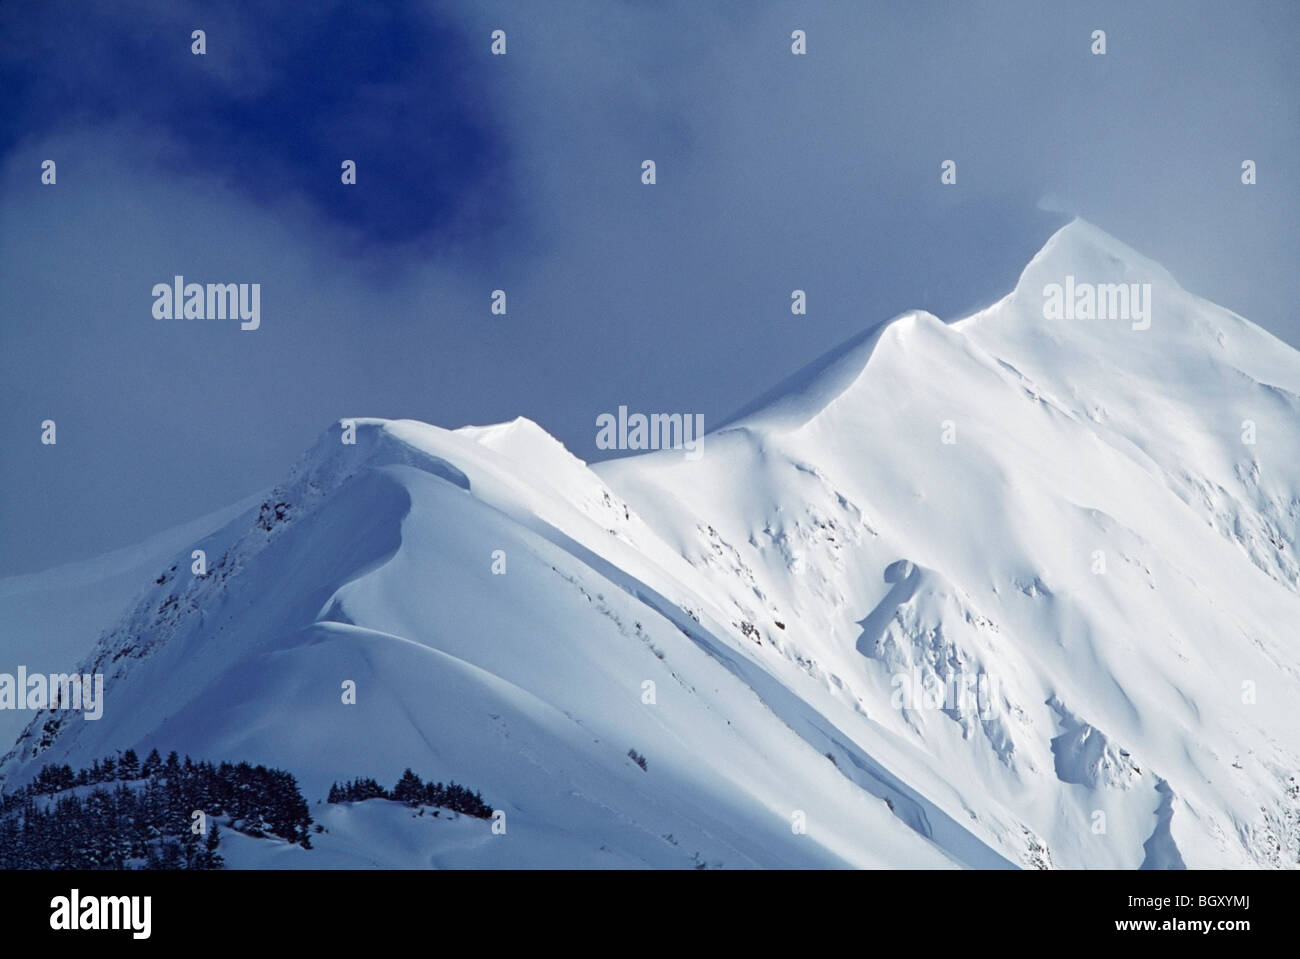 Snow cornice leading up to mountain peak - Stock Image